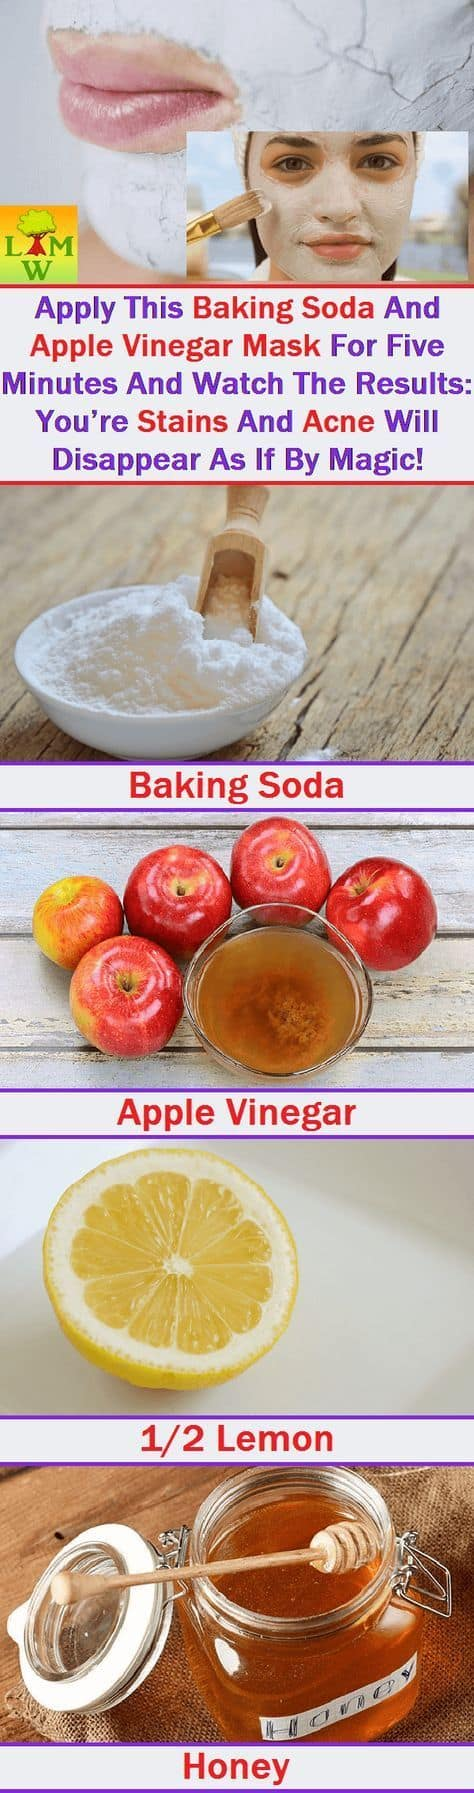 Two powerful acne-fighting ingredients come together in this DIY face mask for pores. Apple cider vinegar wards off bacteria while baking soda exfoliates to leave you with soft, clear skin.